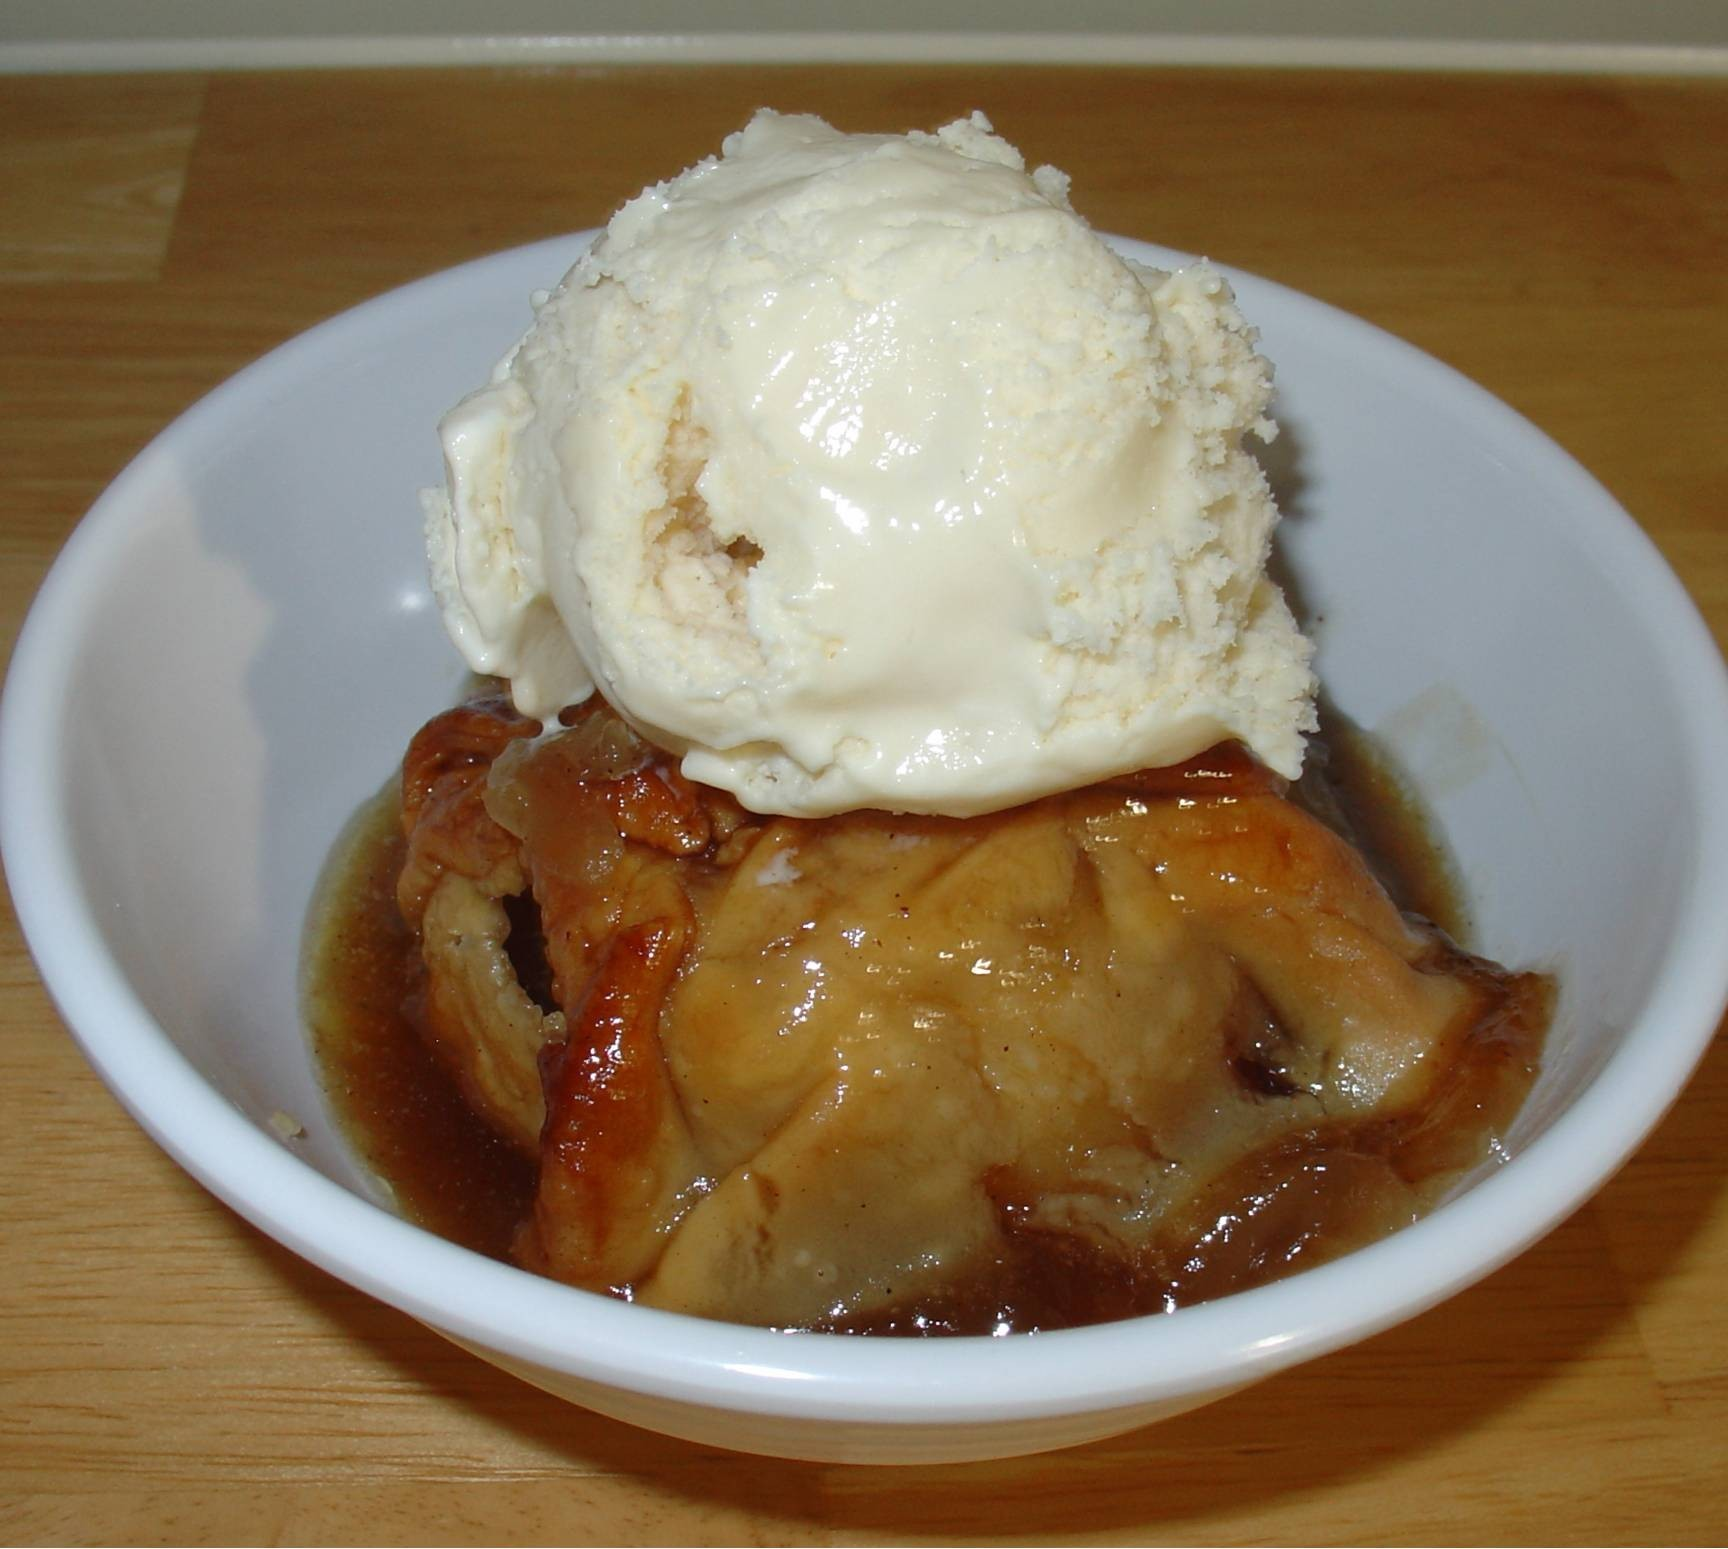 On Apple Dumplings Clipart Old Fashioned With Cinnamon Syrup 10.